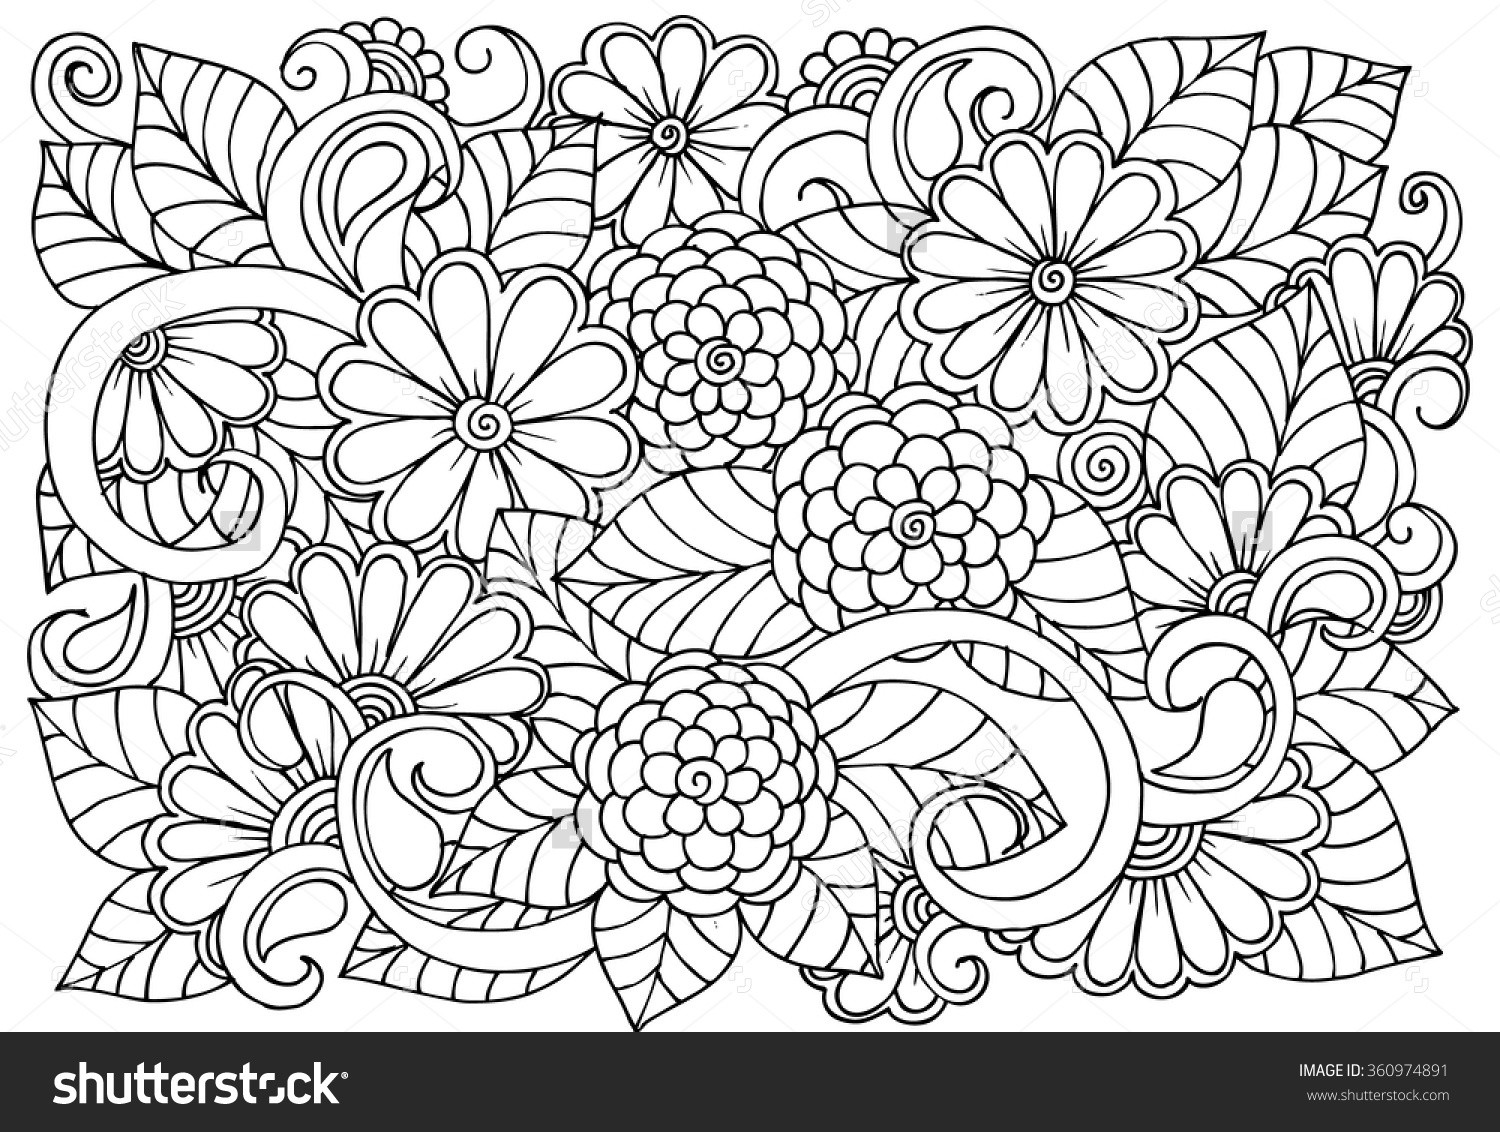 1500x1132 Floral Pattern Coloring Pages Tixac